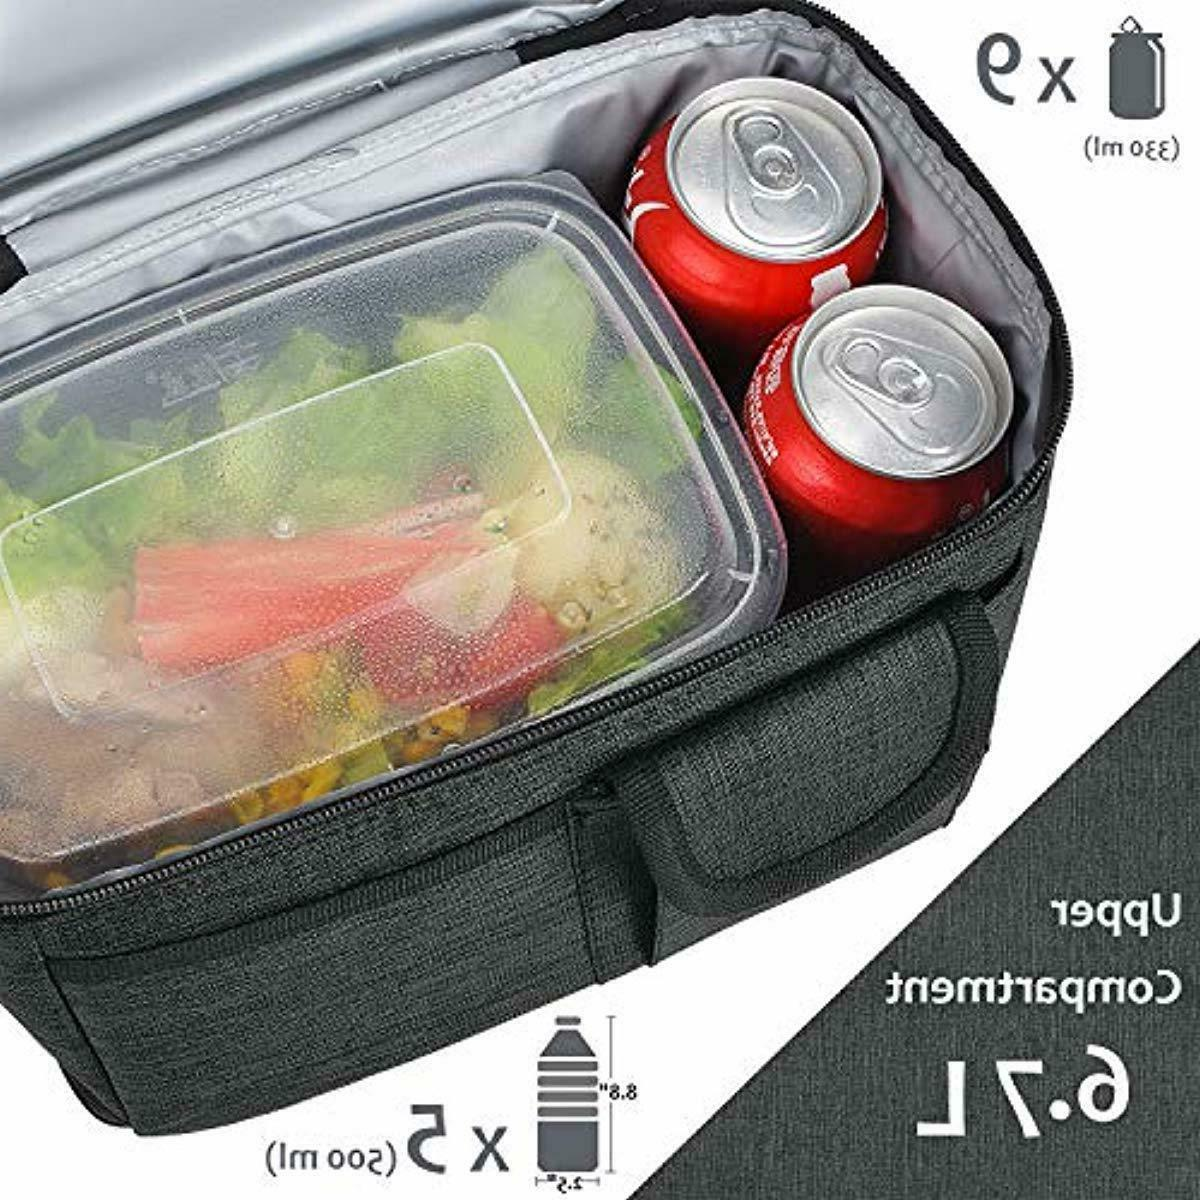 1Insulated Bag, Thermal Bento Cooler for NeW